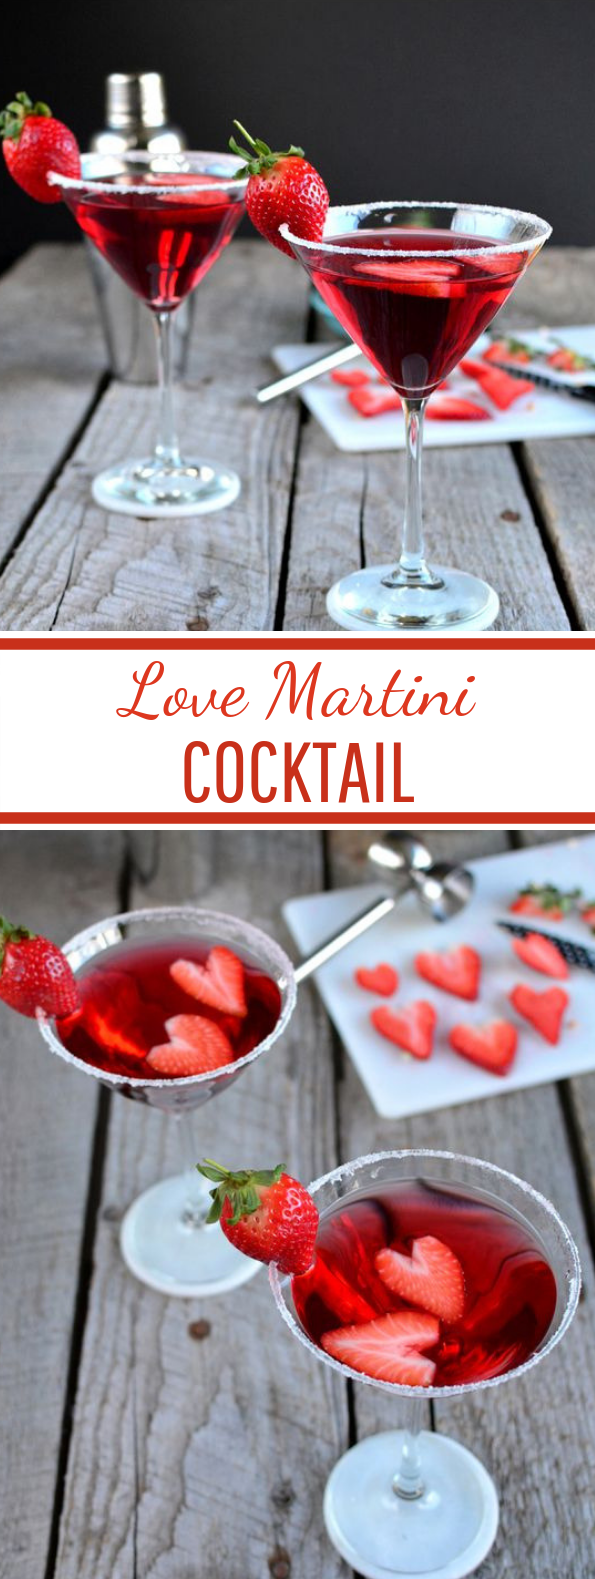 Love Martini (Cocktail) #romantic #drink